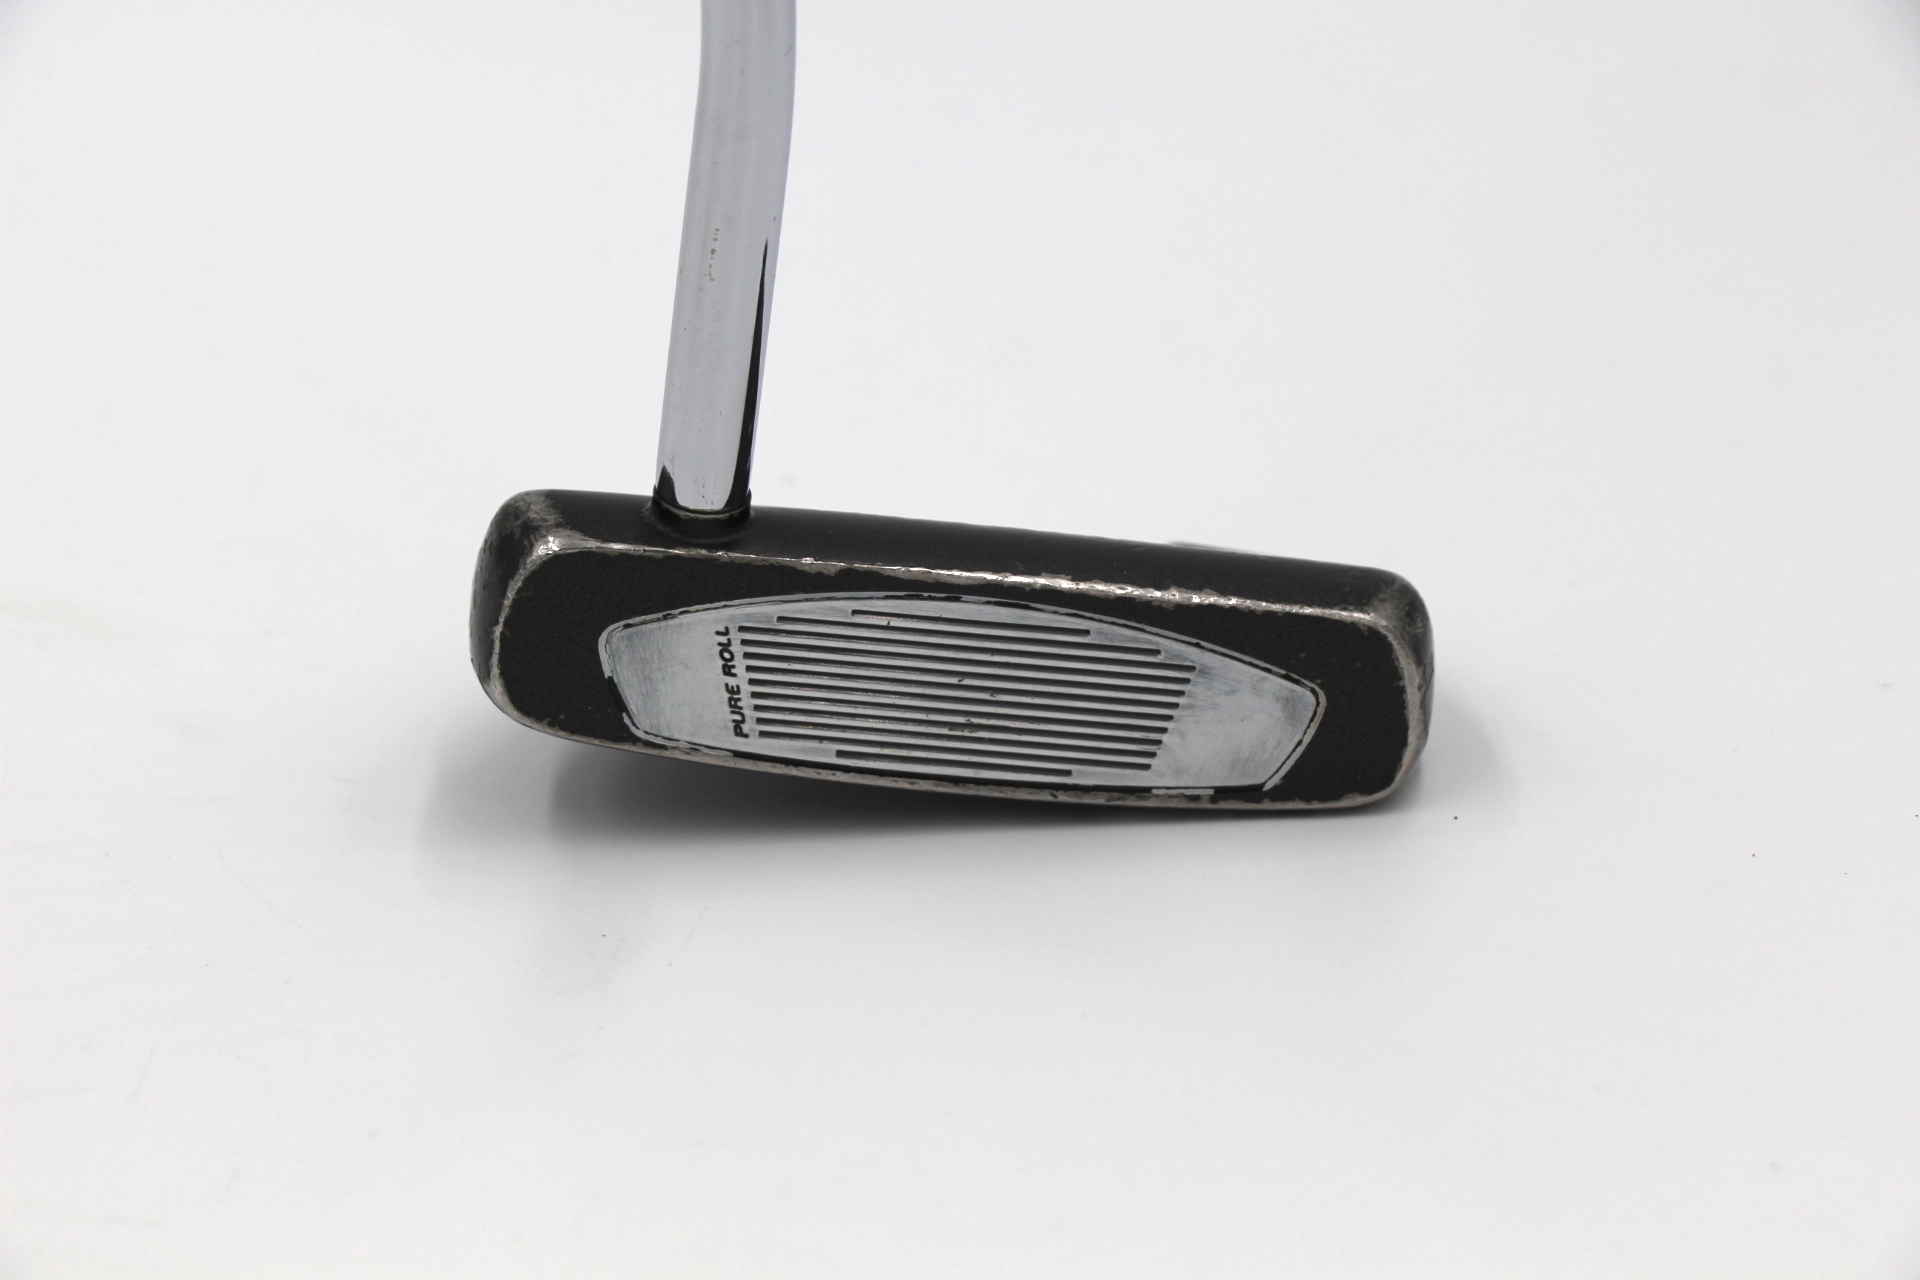 TaylorMade White Smoke Black MC-72 Putter – Left Handed